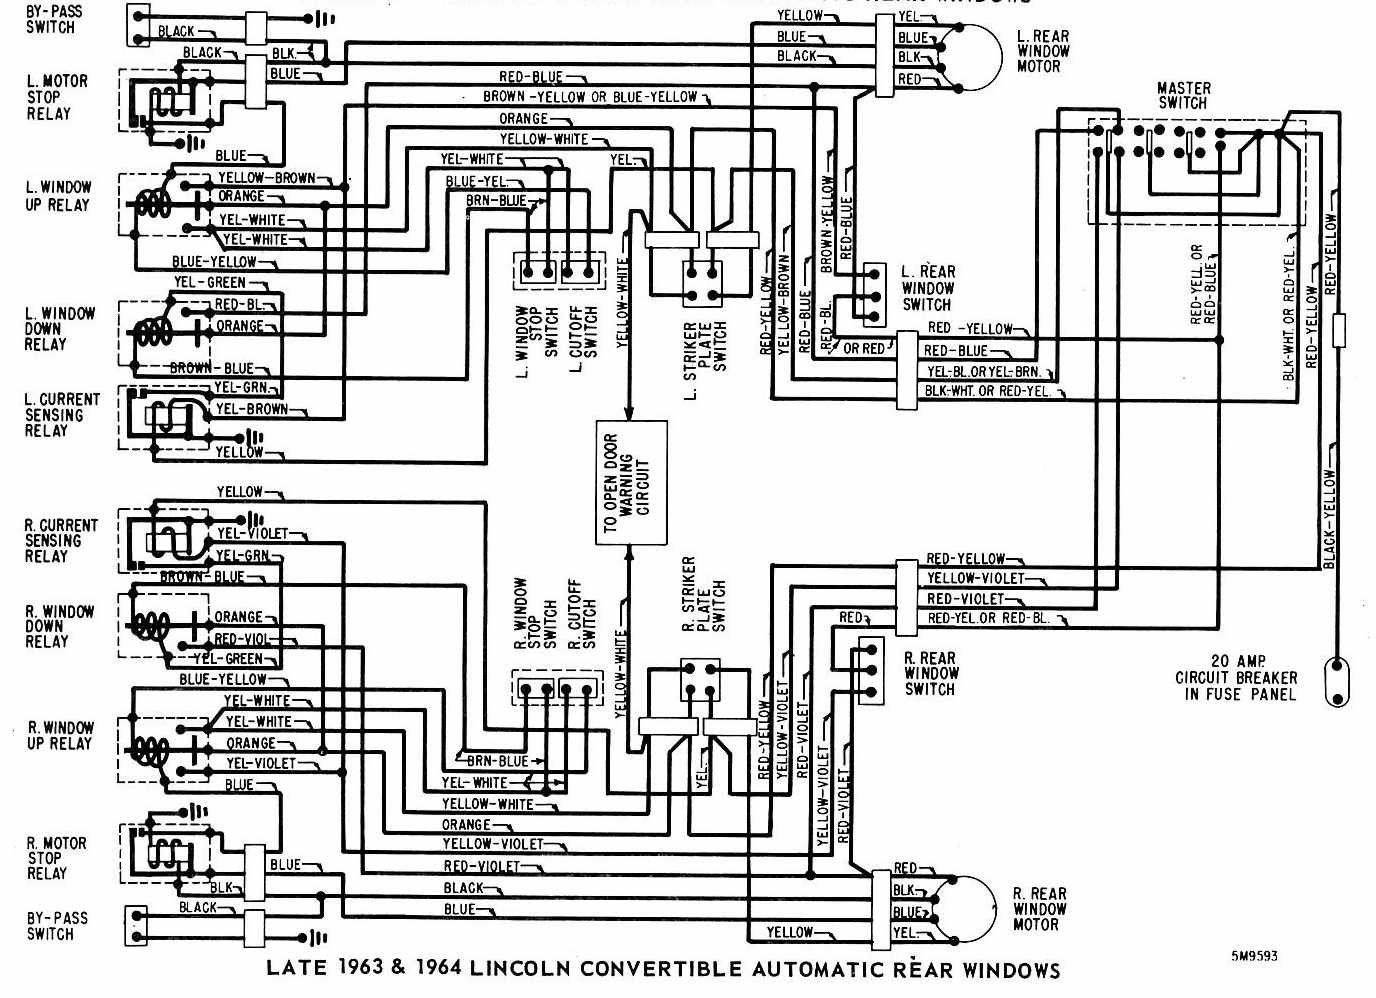 Automotive Wiring Schematics Wiring Diagram 16 6